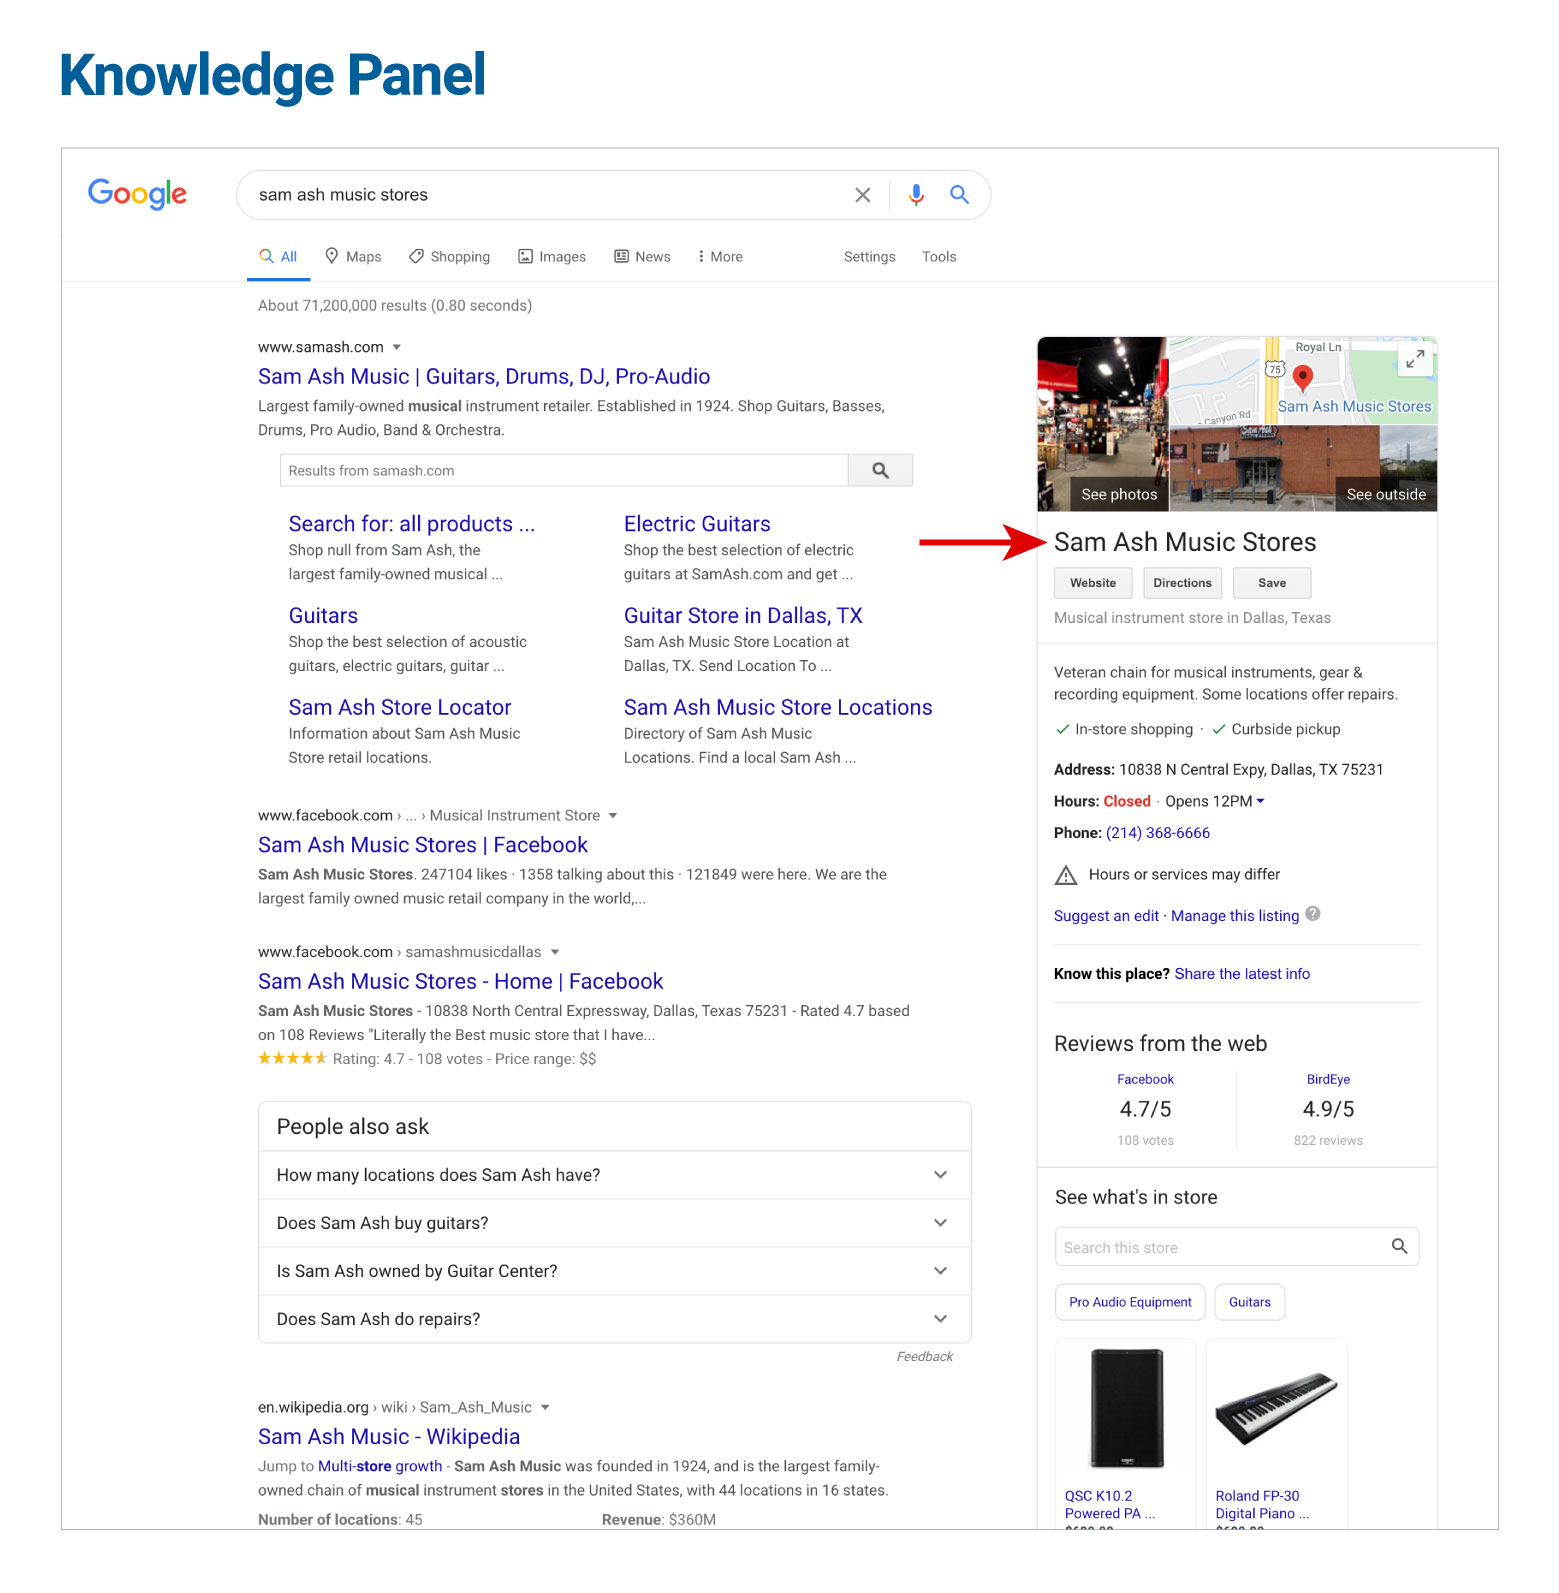 Knowledge Panel